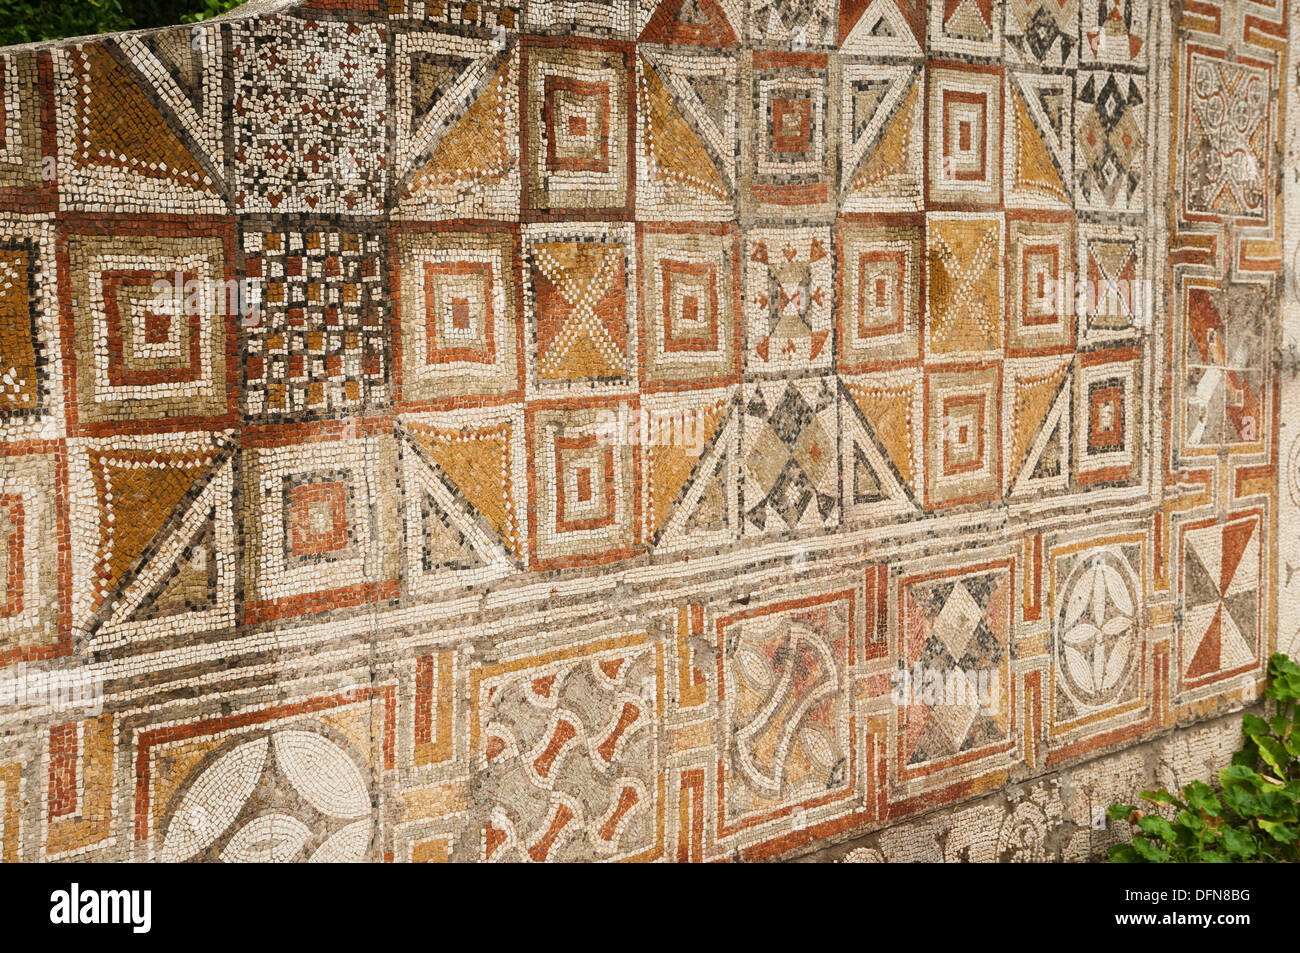 Roman Wall Mosaic Tile Work At The History Museum Of